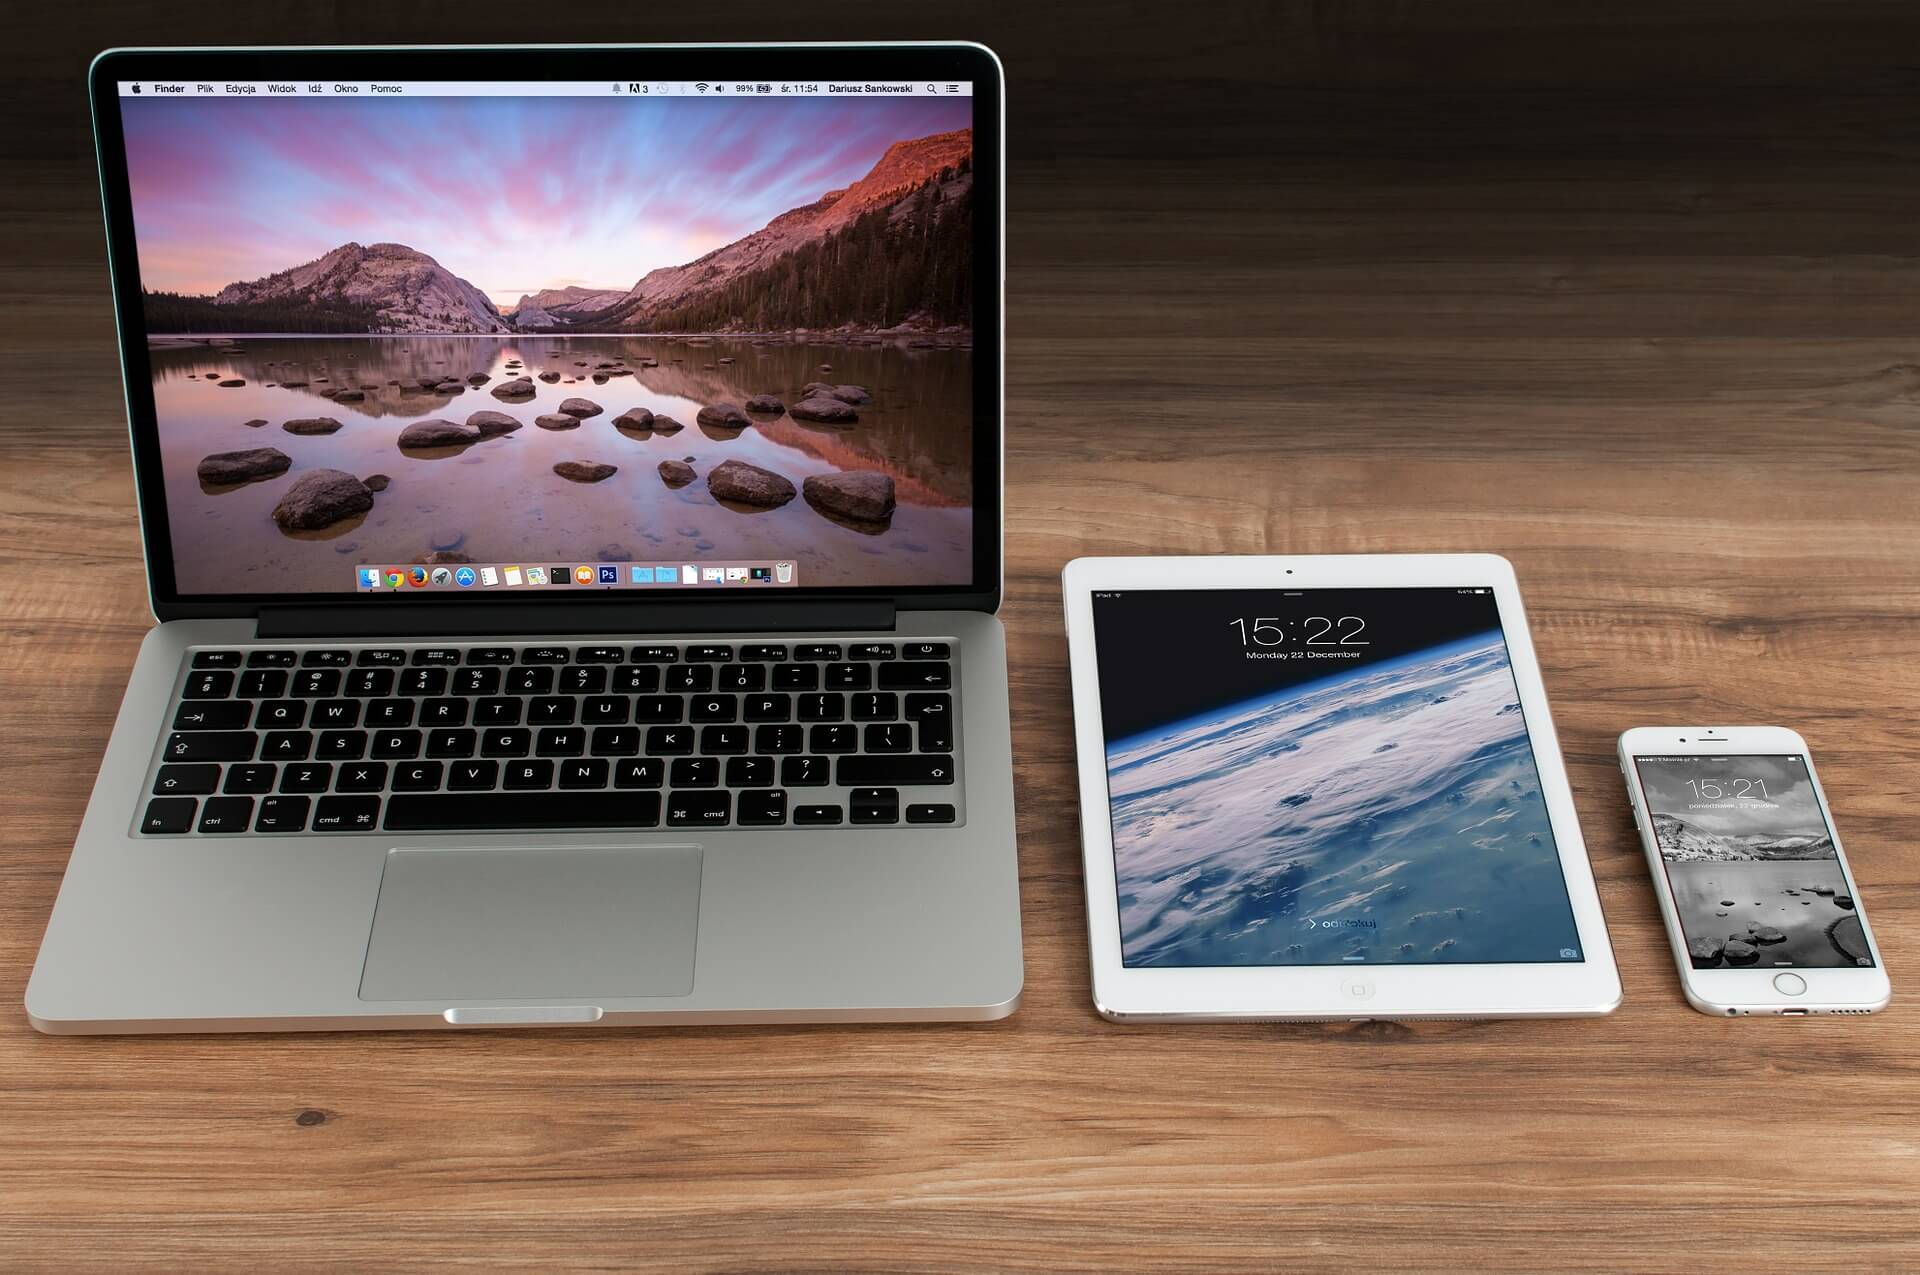 apple watch macbook spring forward 2015 0762 In Gold und mit Force Touch: Neues 12 Zoll Macbook